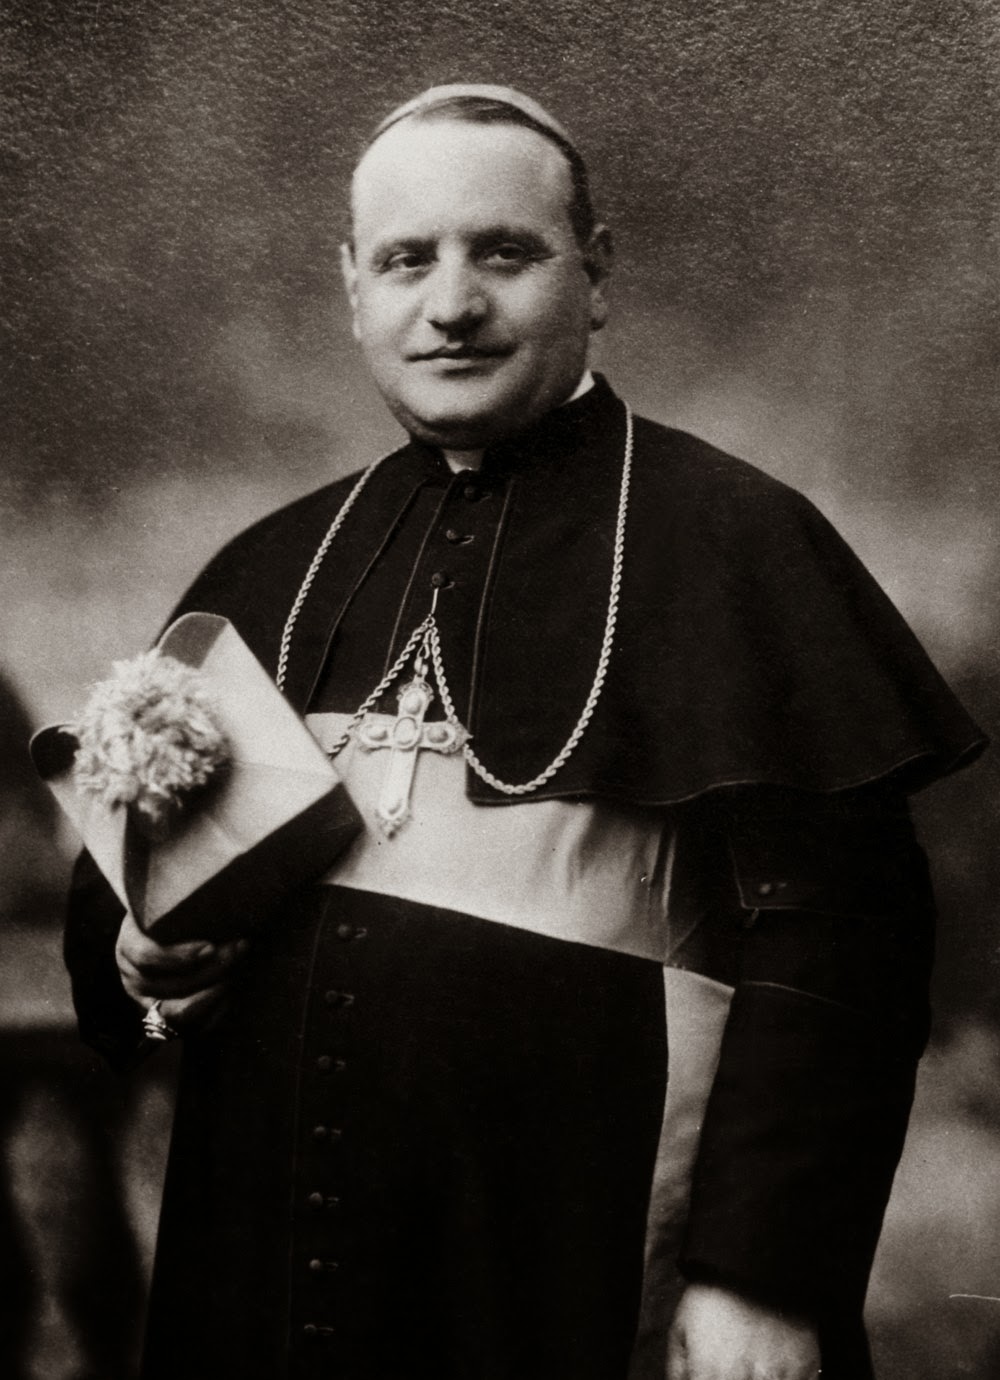 Bl Pope John XXIII was born Angelo Giuseppe Roncalli at Sotto il Monte Italy in the Diocese of Bergamo on 25 November 1881 He was the fourth in a